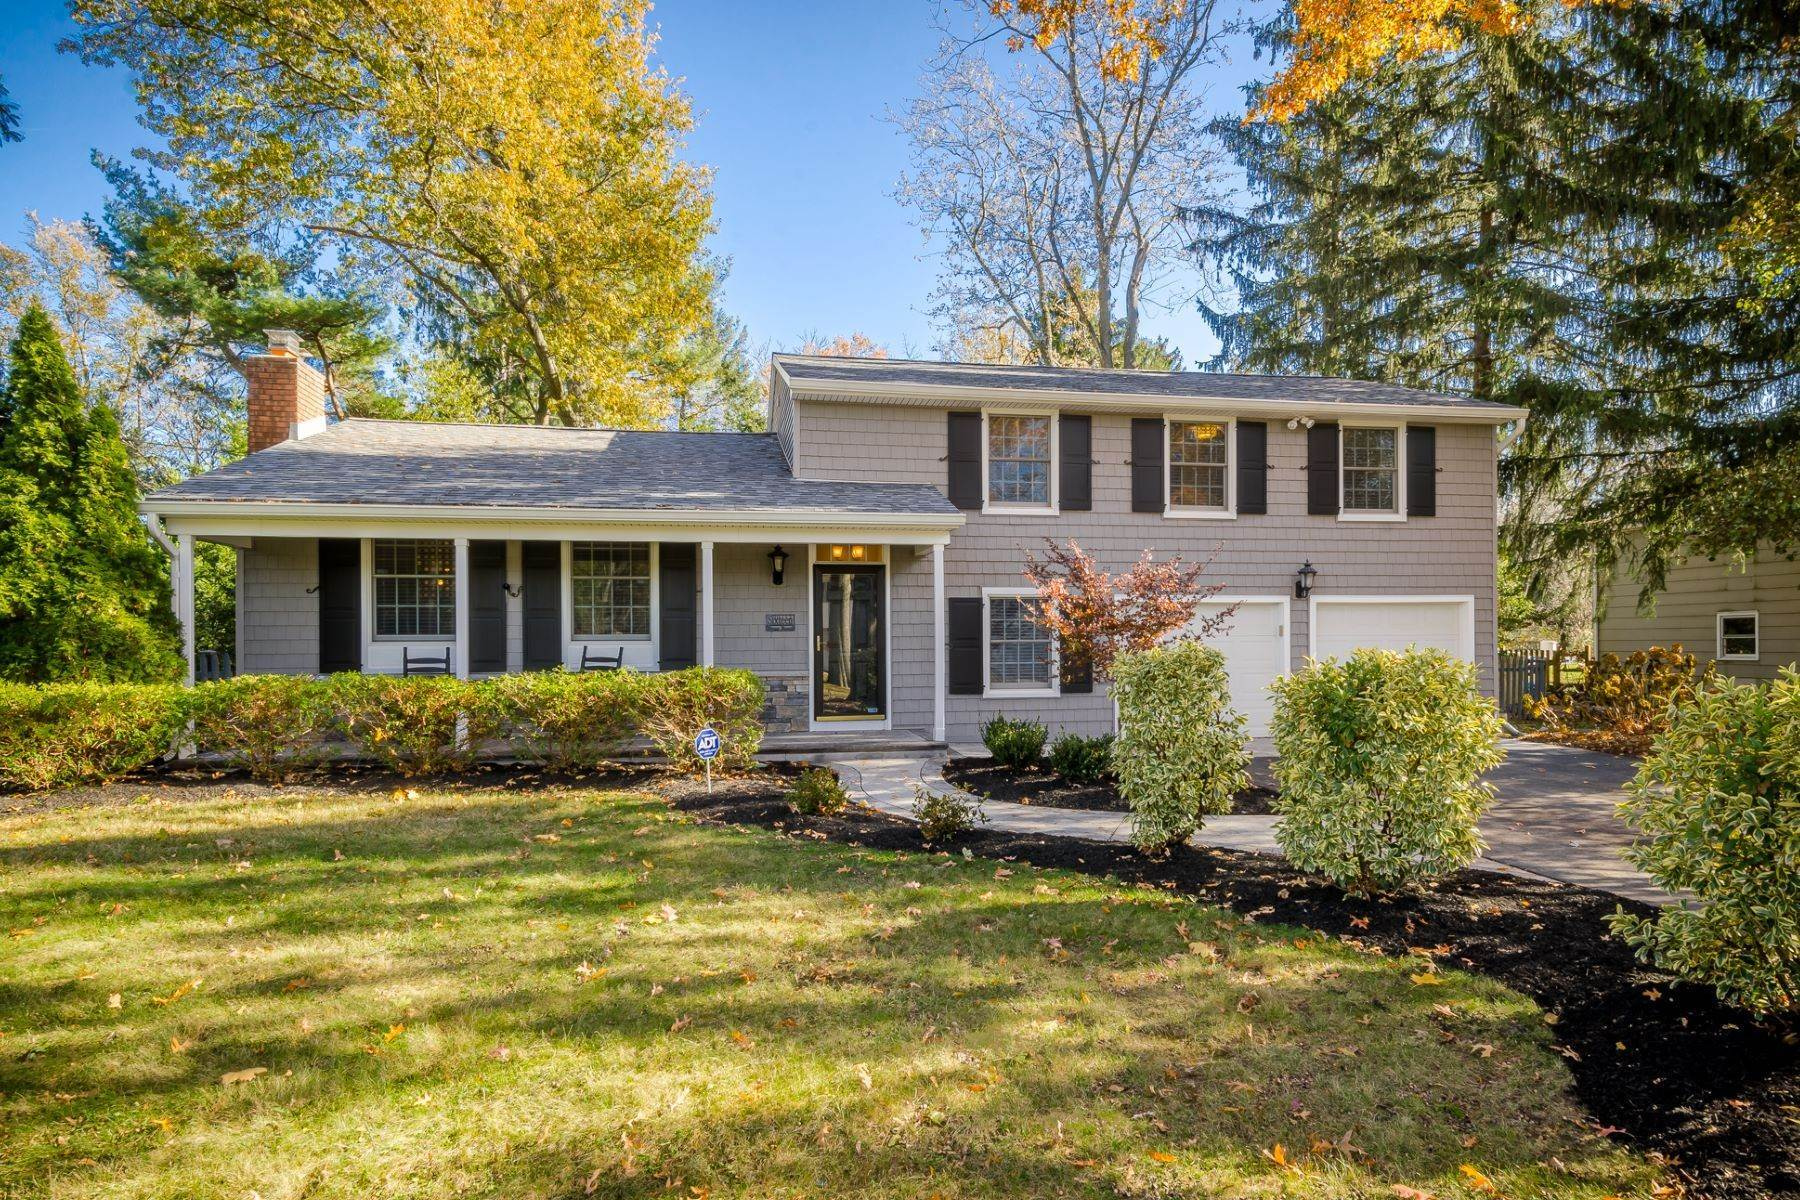 Property à Completely Charming and Up-to-Date in Cranbury 16 Ryan Road, Cranbury, New Jersey 08512 États-Unis